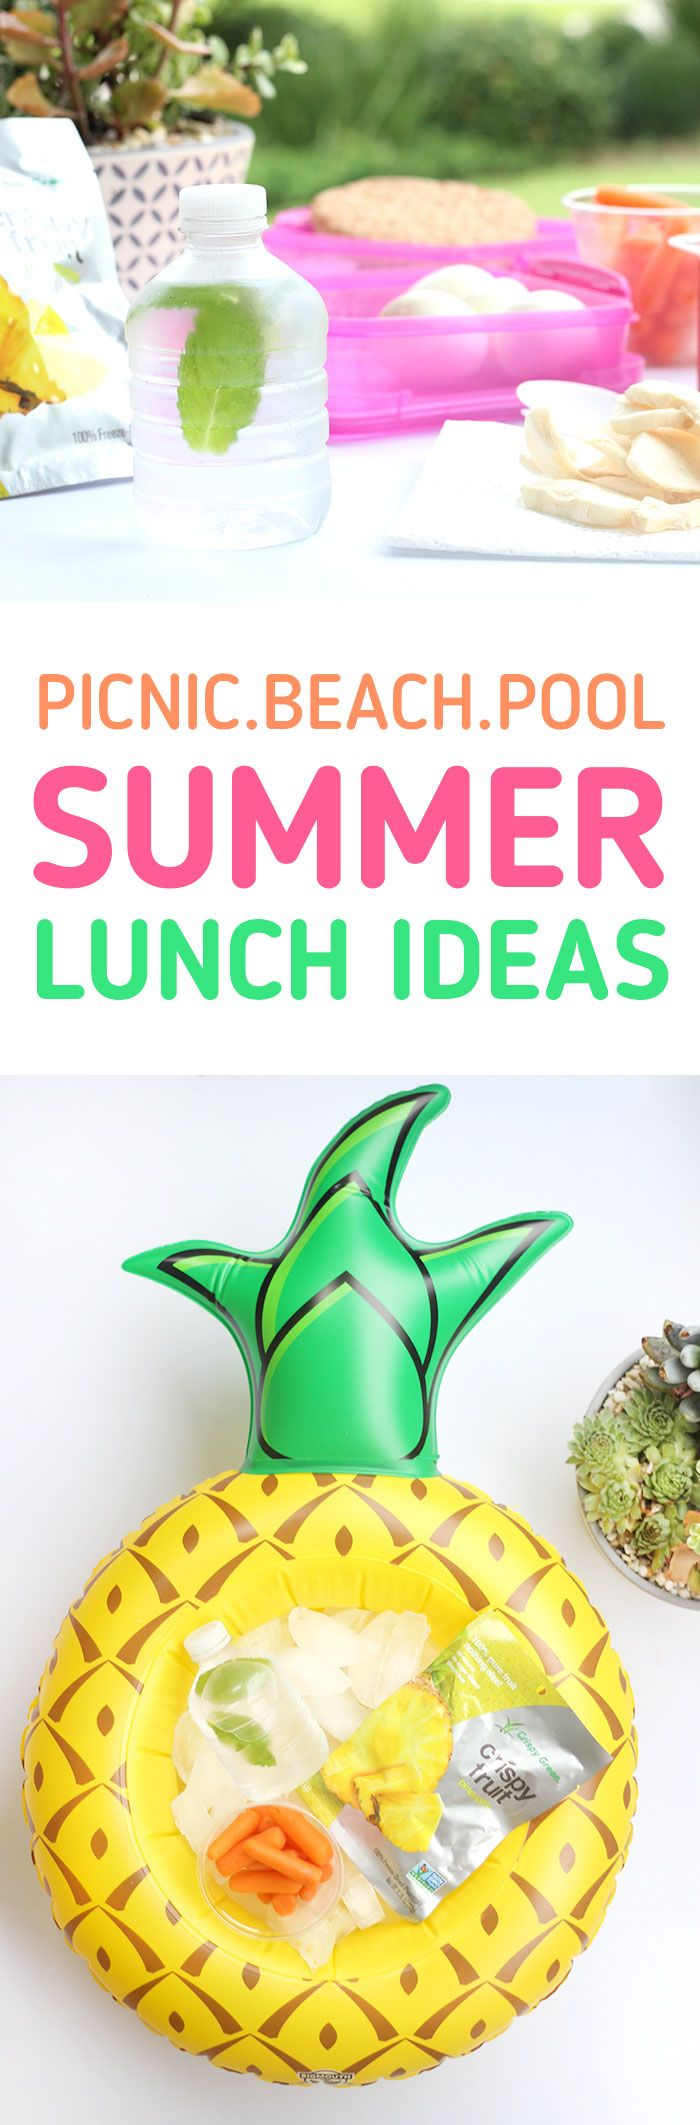 Pool Food Ideas? Picnic Fun? Check out these easy lunch ideas for any summer adventure on the go featuring Crispy Fruit. AD